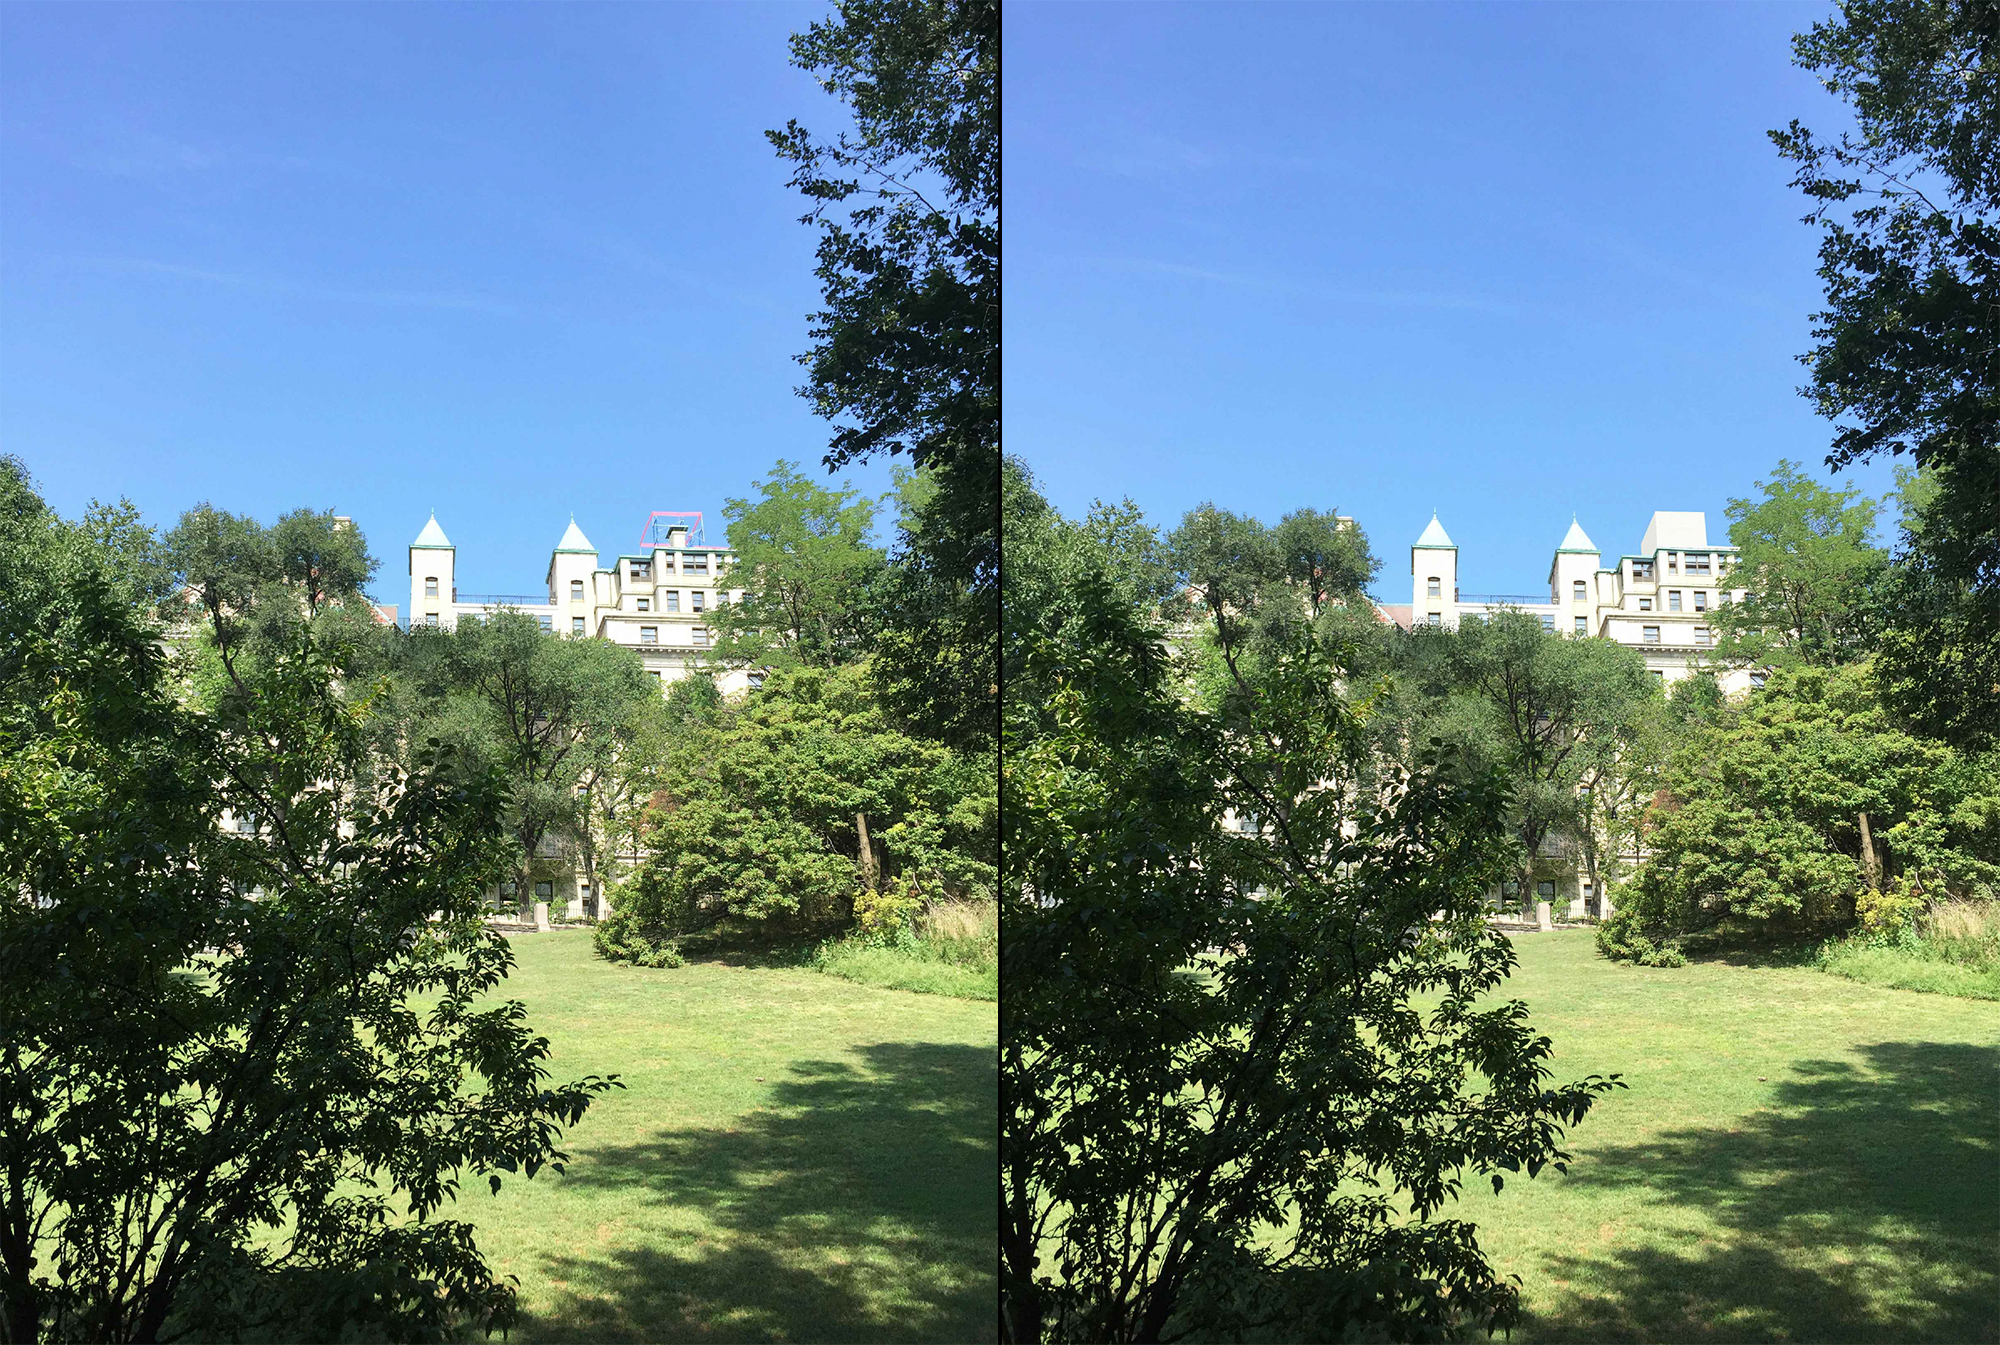 Existing conditions at 30 Morningside Drive as seen from Morningside Park (left) and rendered with bulkhead (right)